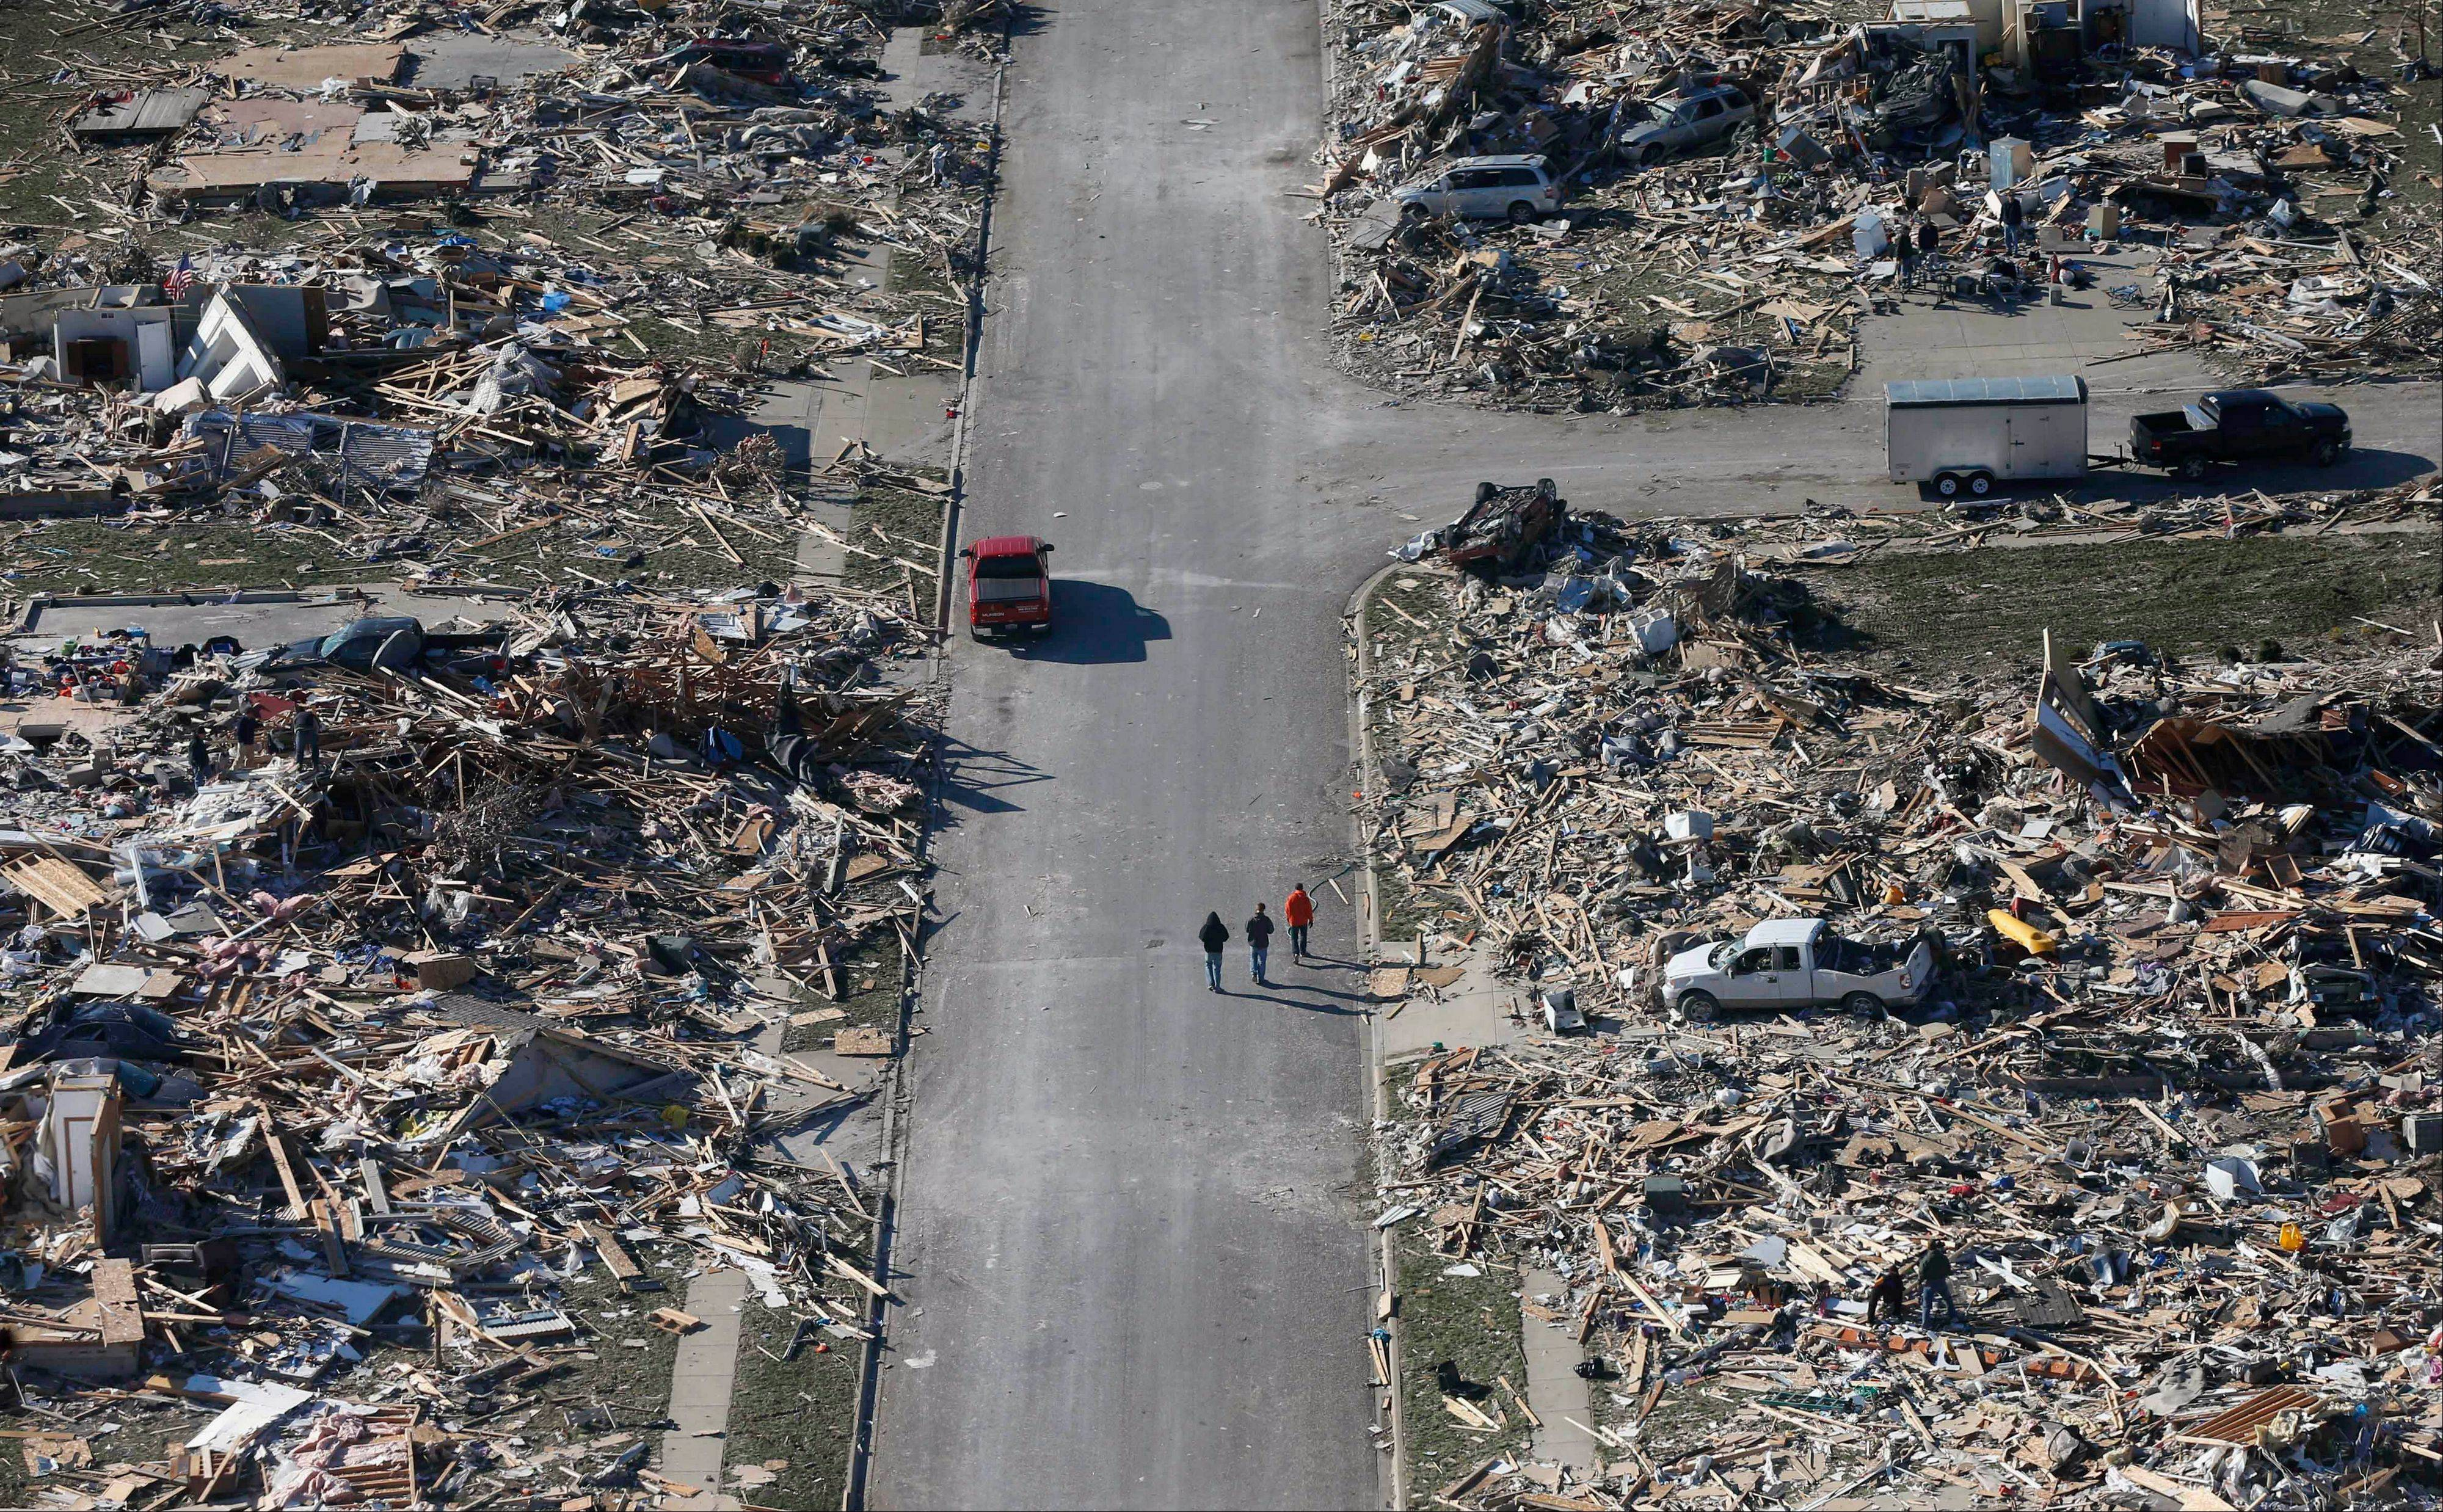 This Monday, Nov. 18, 2013 aerial file photo shows people walking down a street where homes once stood that were destroyed by a tornado that hit the western Illinois town of Washington. Two dozen tornadoes swept through the state killing seven people. It was voted as one of the top 10 stories in Illinois for 2013.